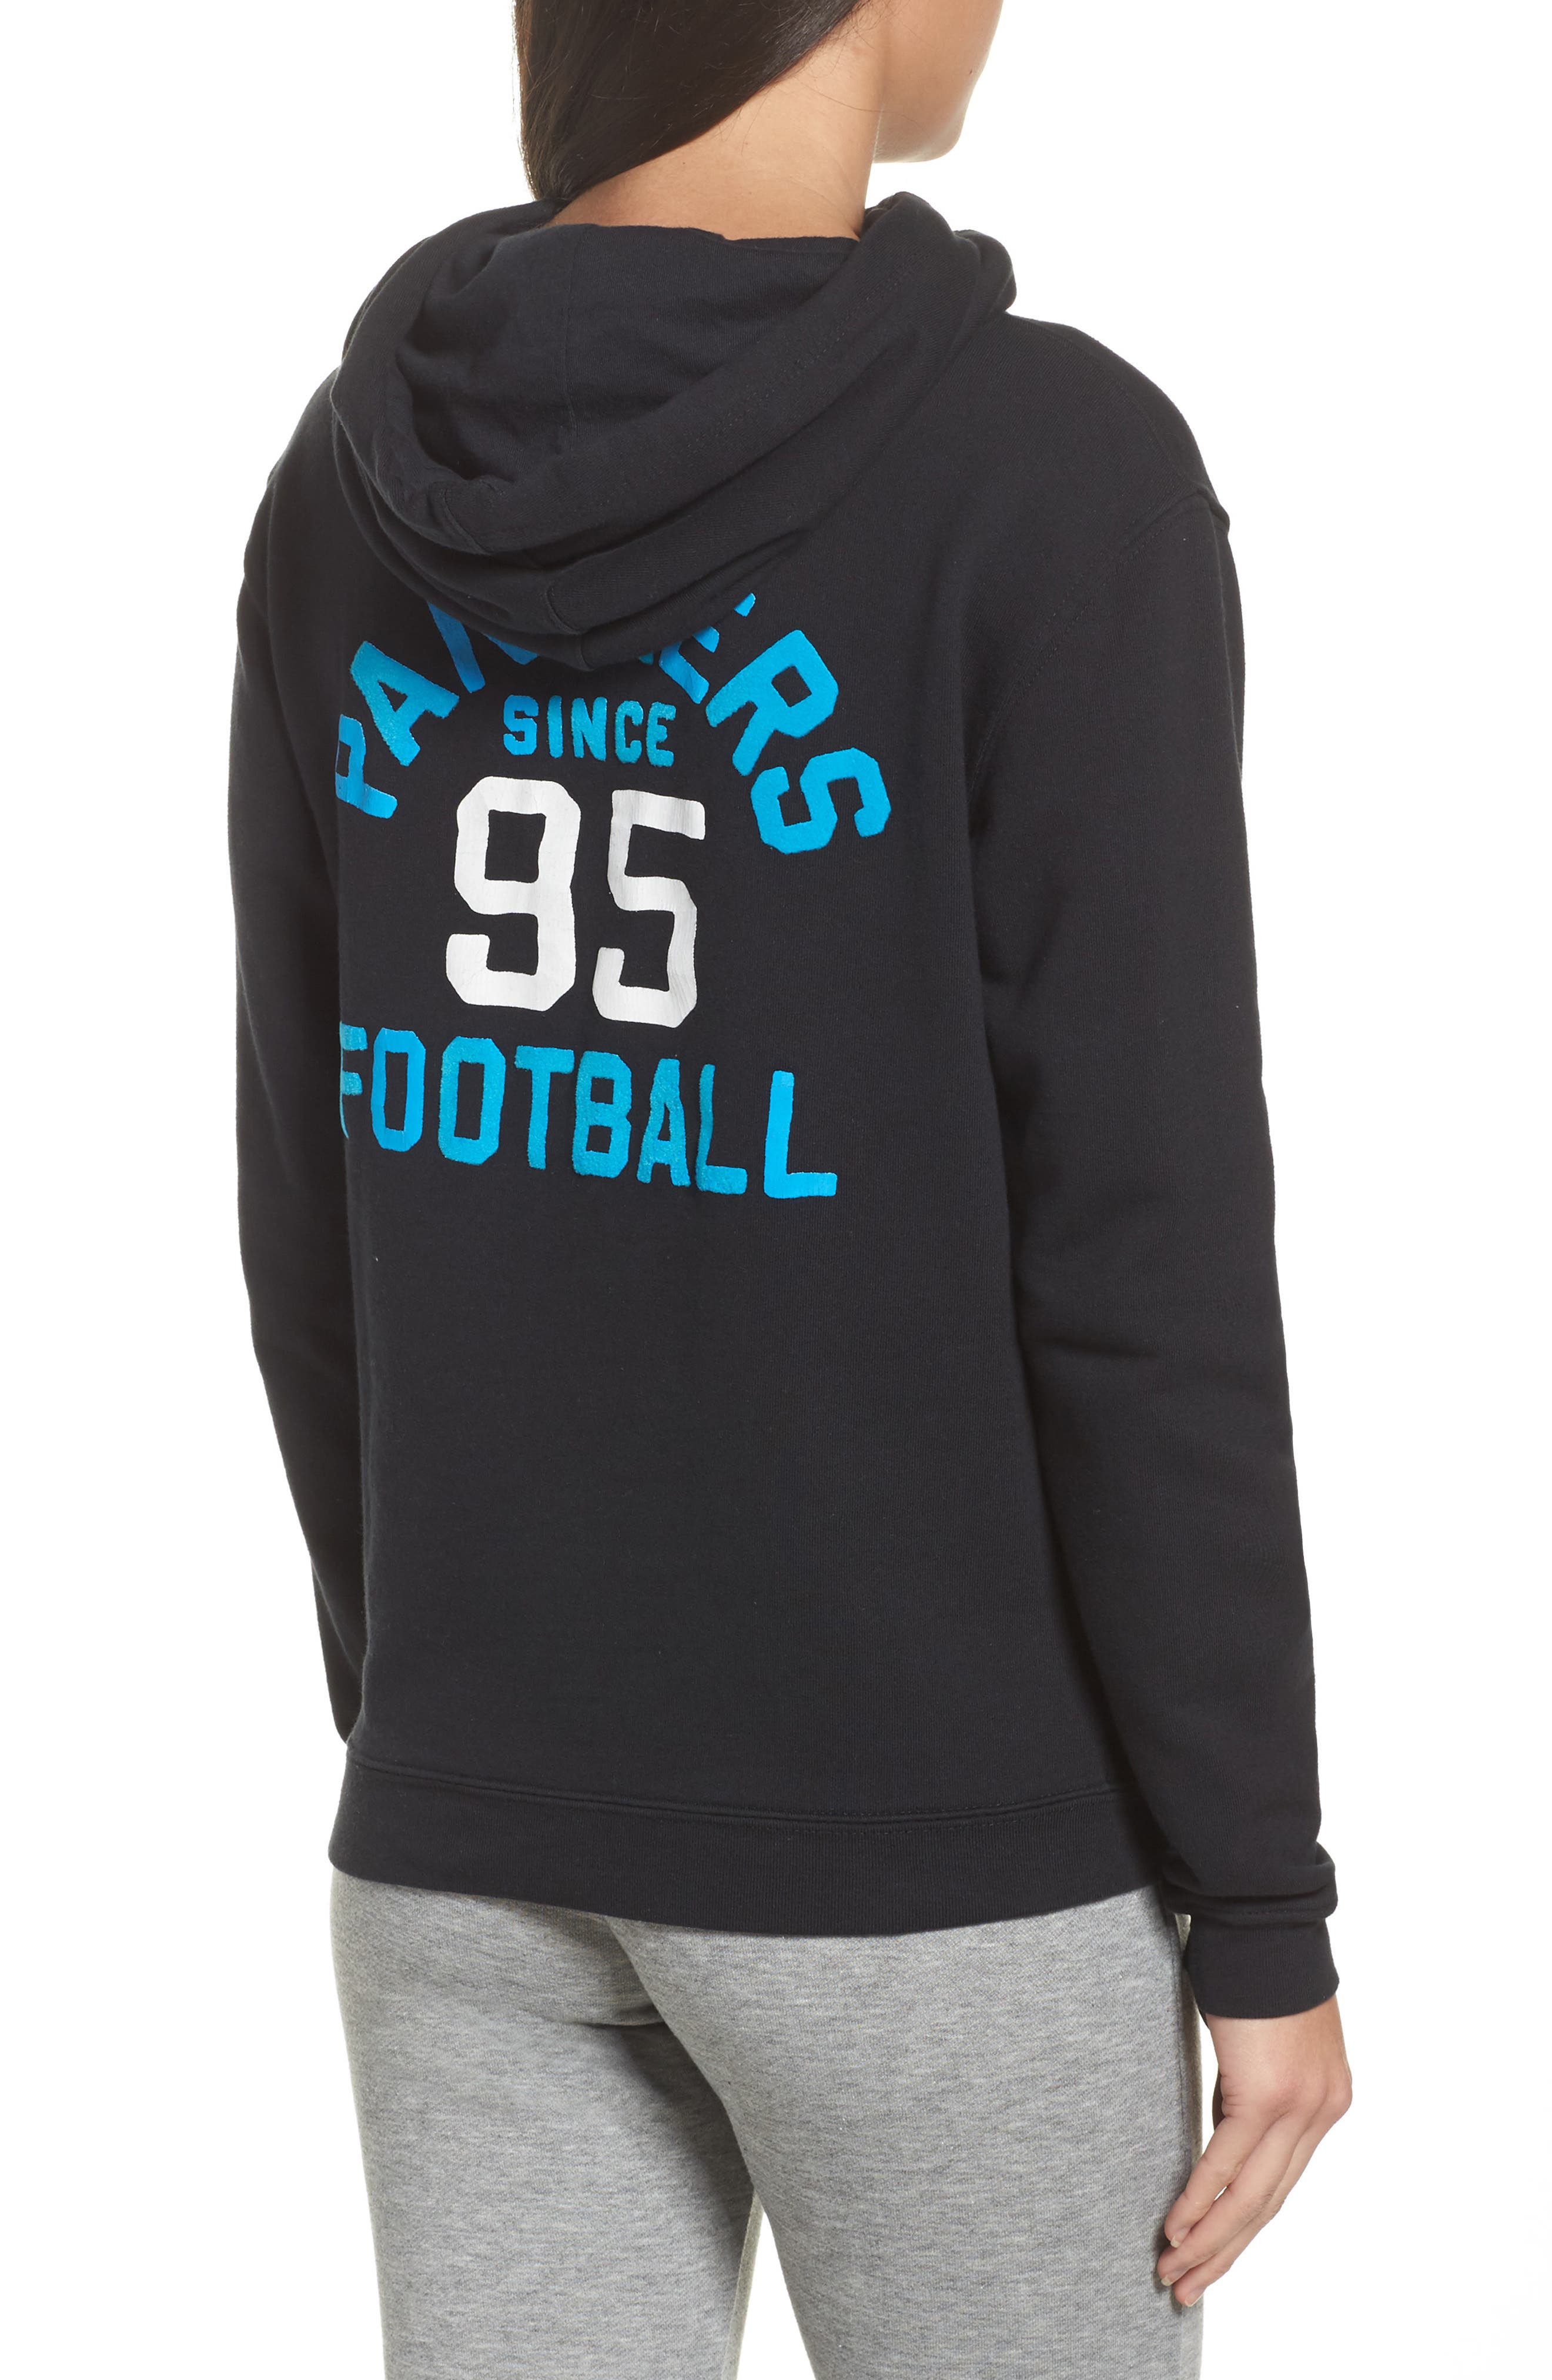 Panthers Sunday Hoodie,                             Alternate thumbnail 2, color,                             001